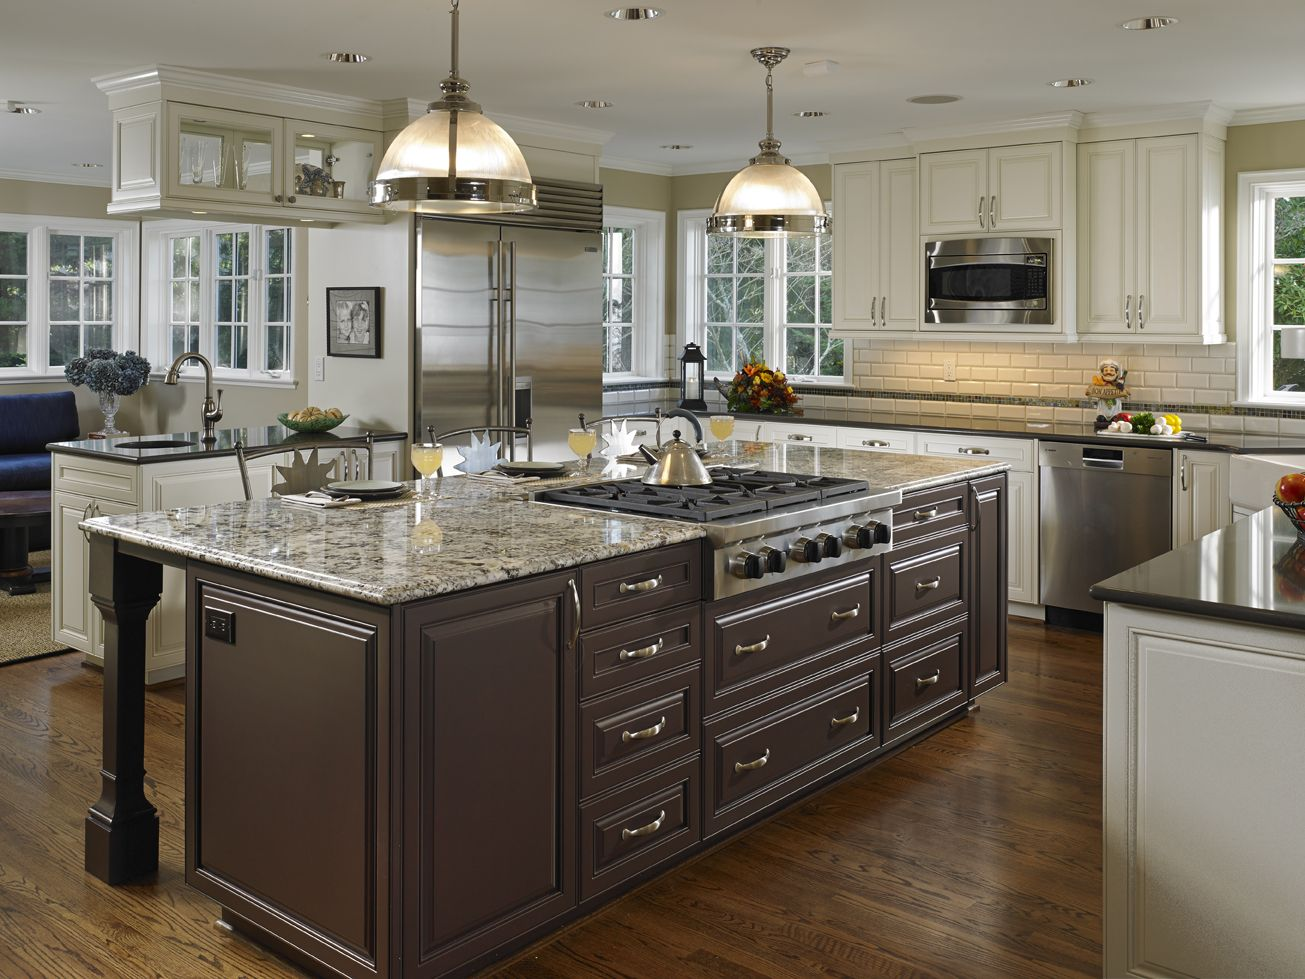 Oversize Kitchen Island with stovetop Kitchen island